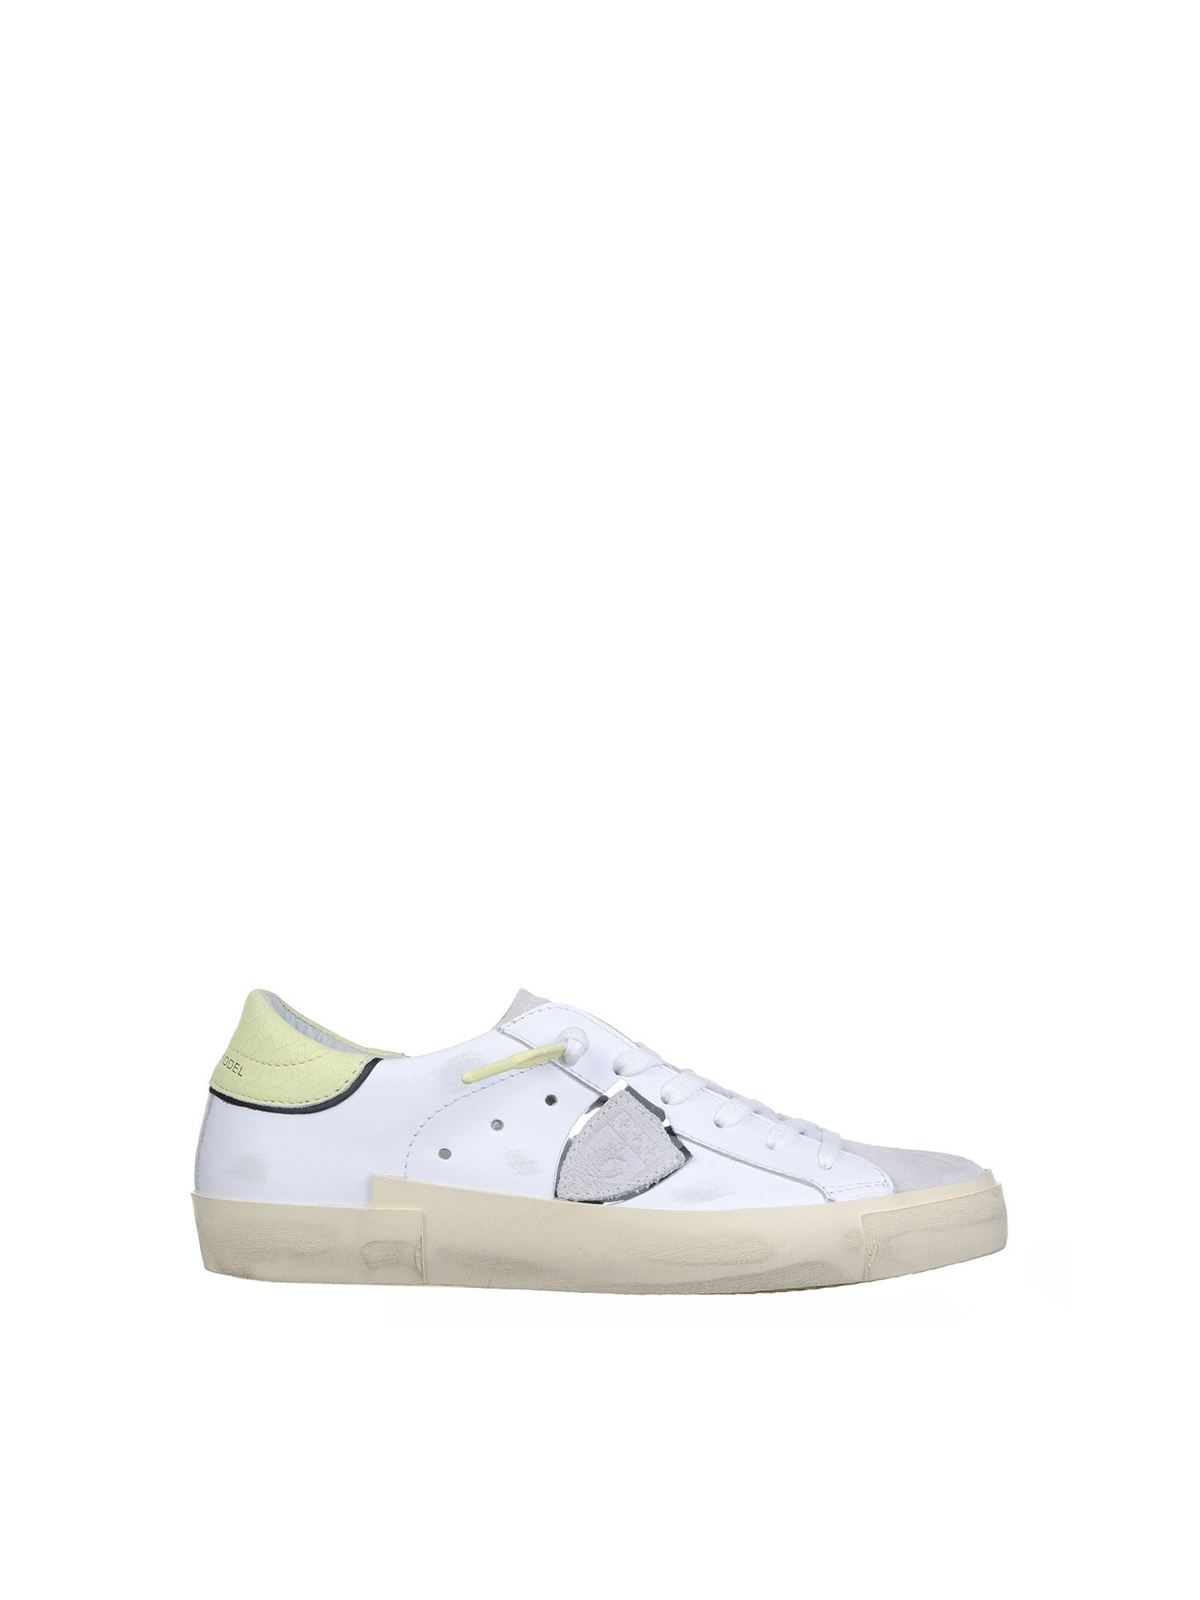 Philippe Model PRSX LOW SNEAKERS IN WHITE AND YELLOW